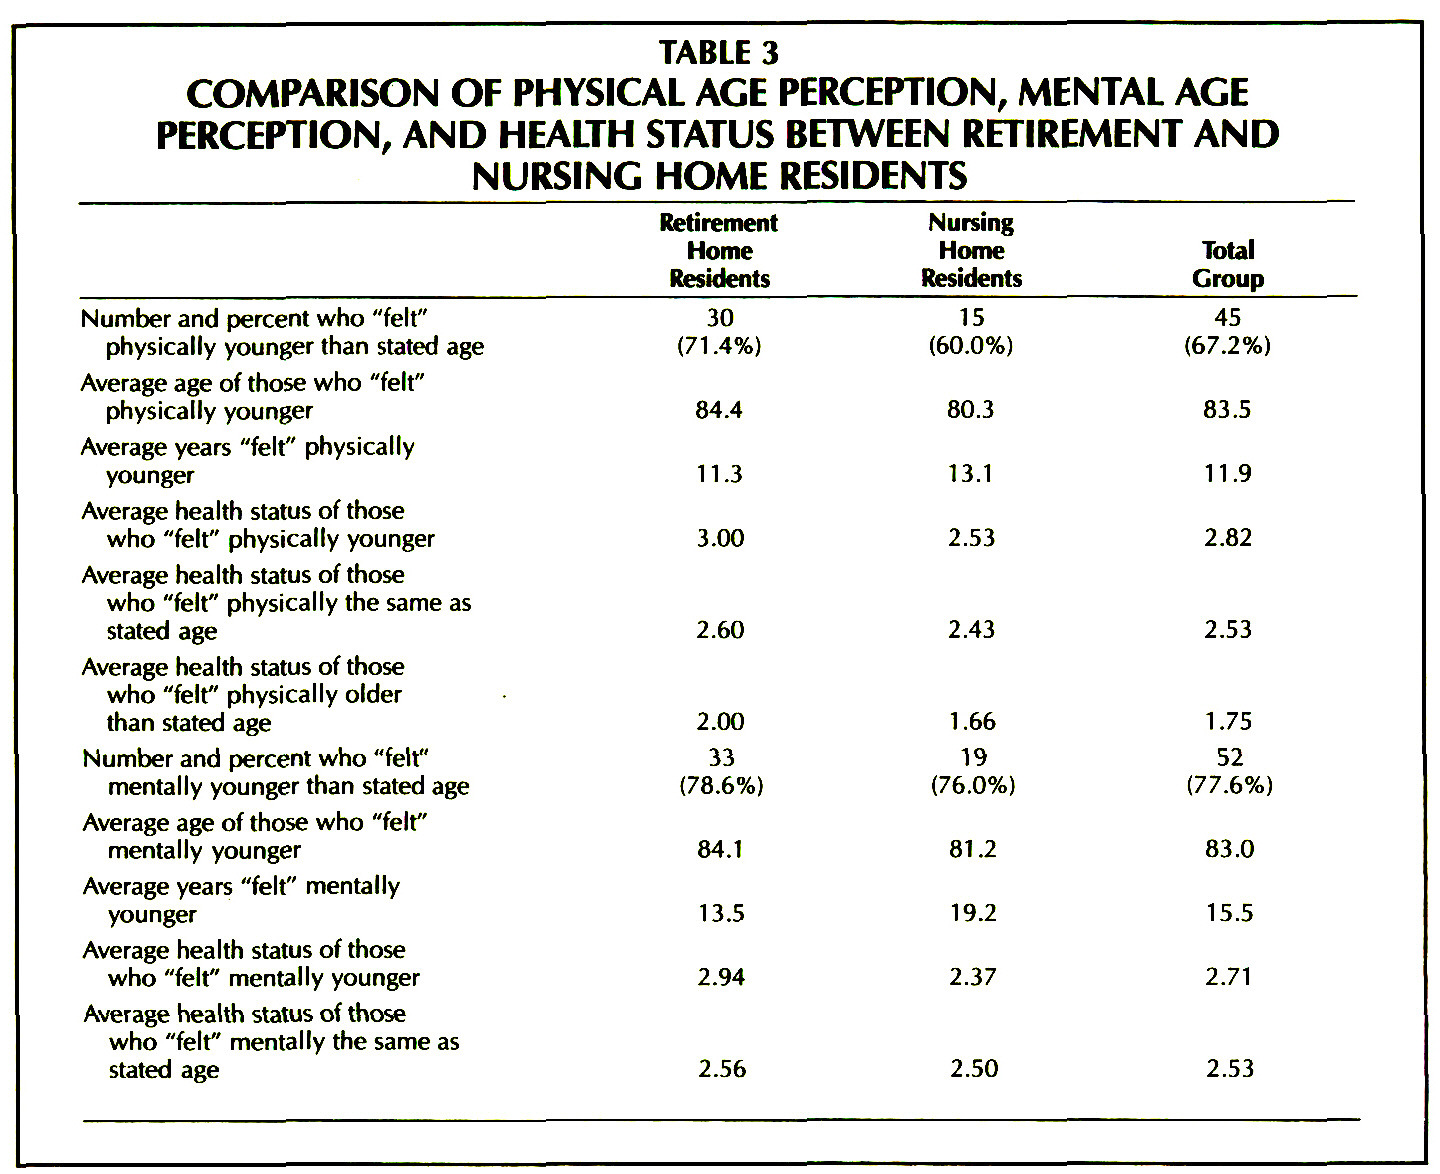 TABLE 3COMPARISON OF PHYSICAL AGE PERCEPTION, MENTAL AGE PERCEPTION, AND HEALTH STATUS BETWEEN RETIREMENT AND NURSING HOME RESIDENTS